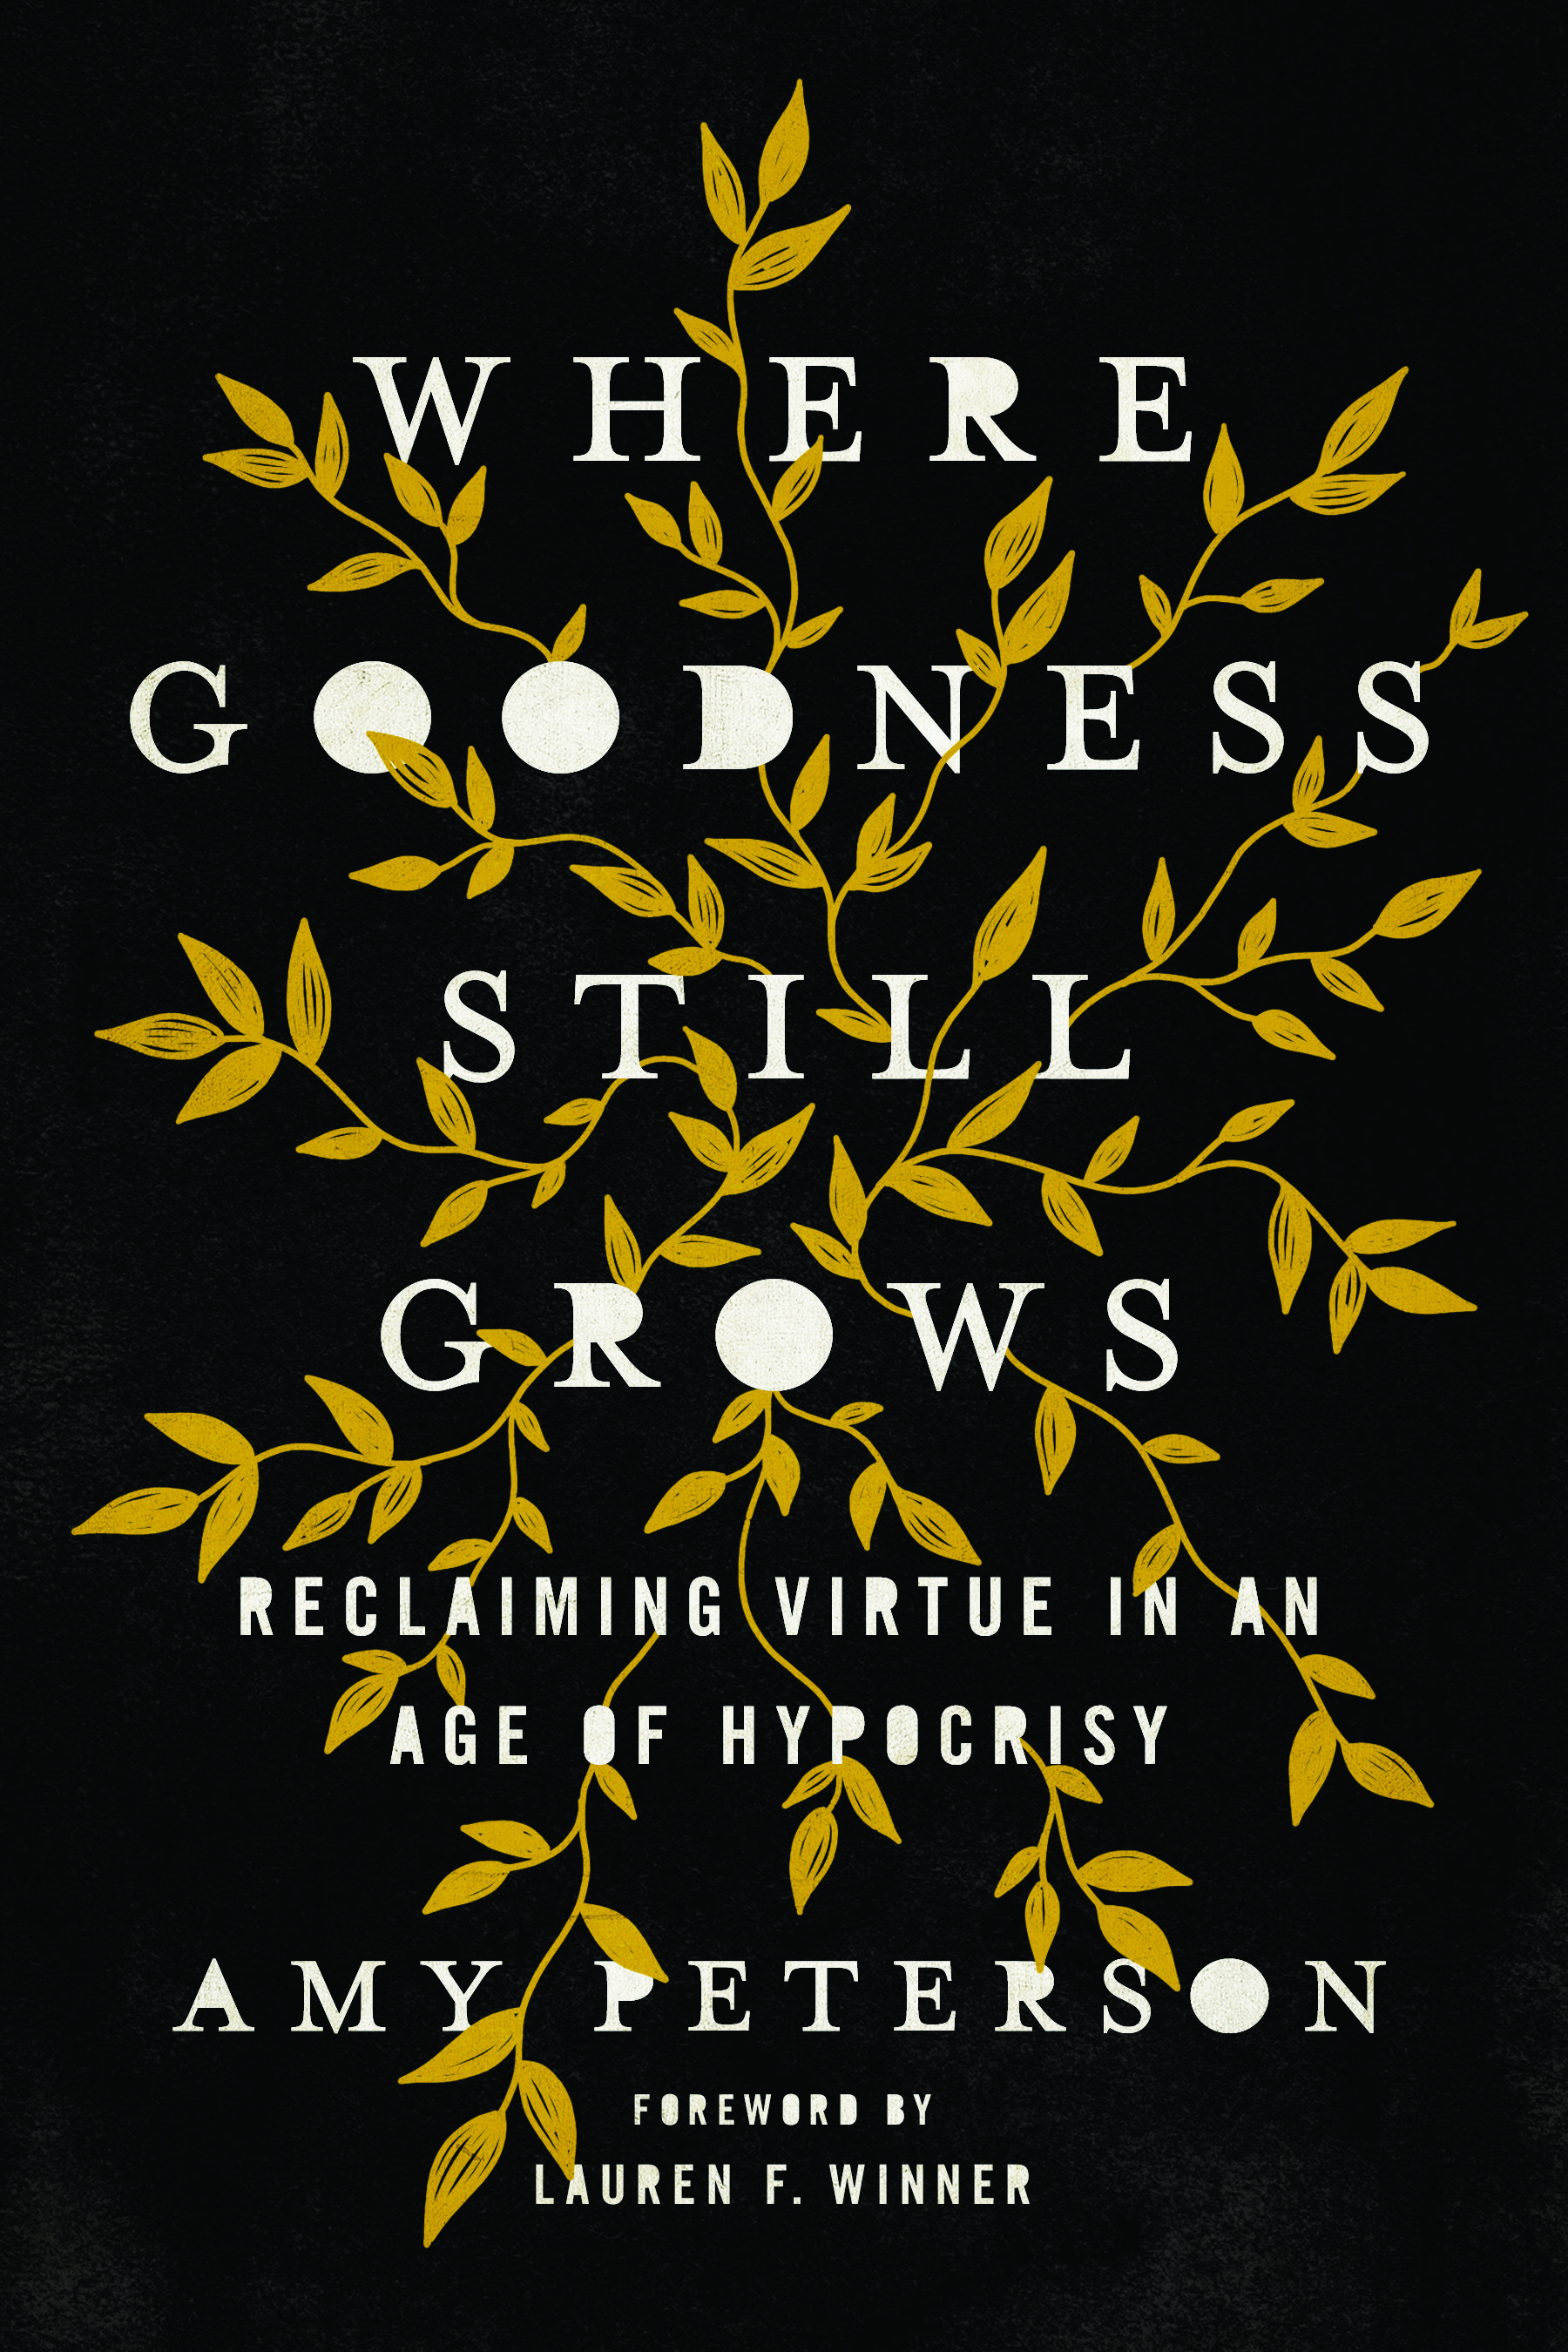 WhereGoodnessStillGrows_CVR_rev.jpg